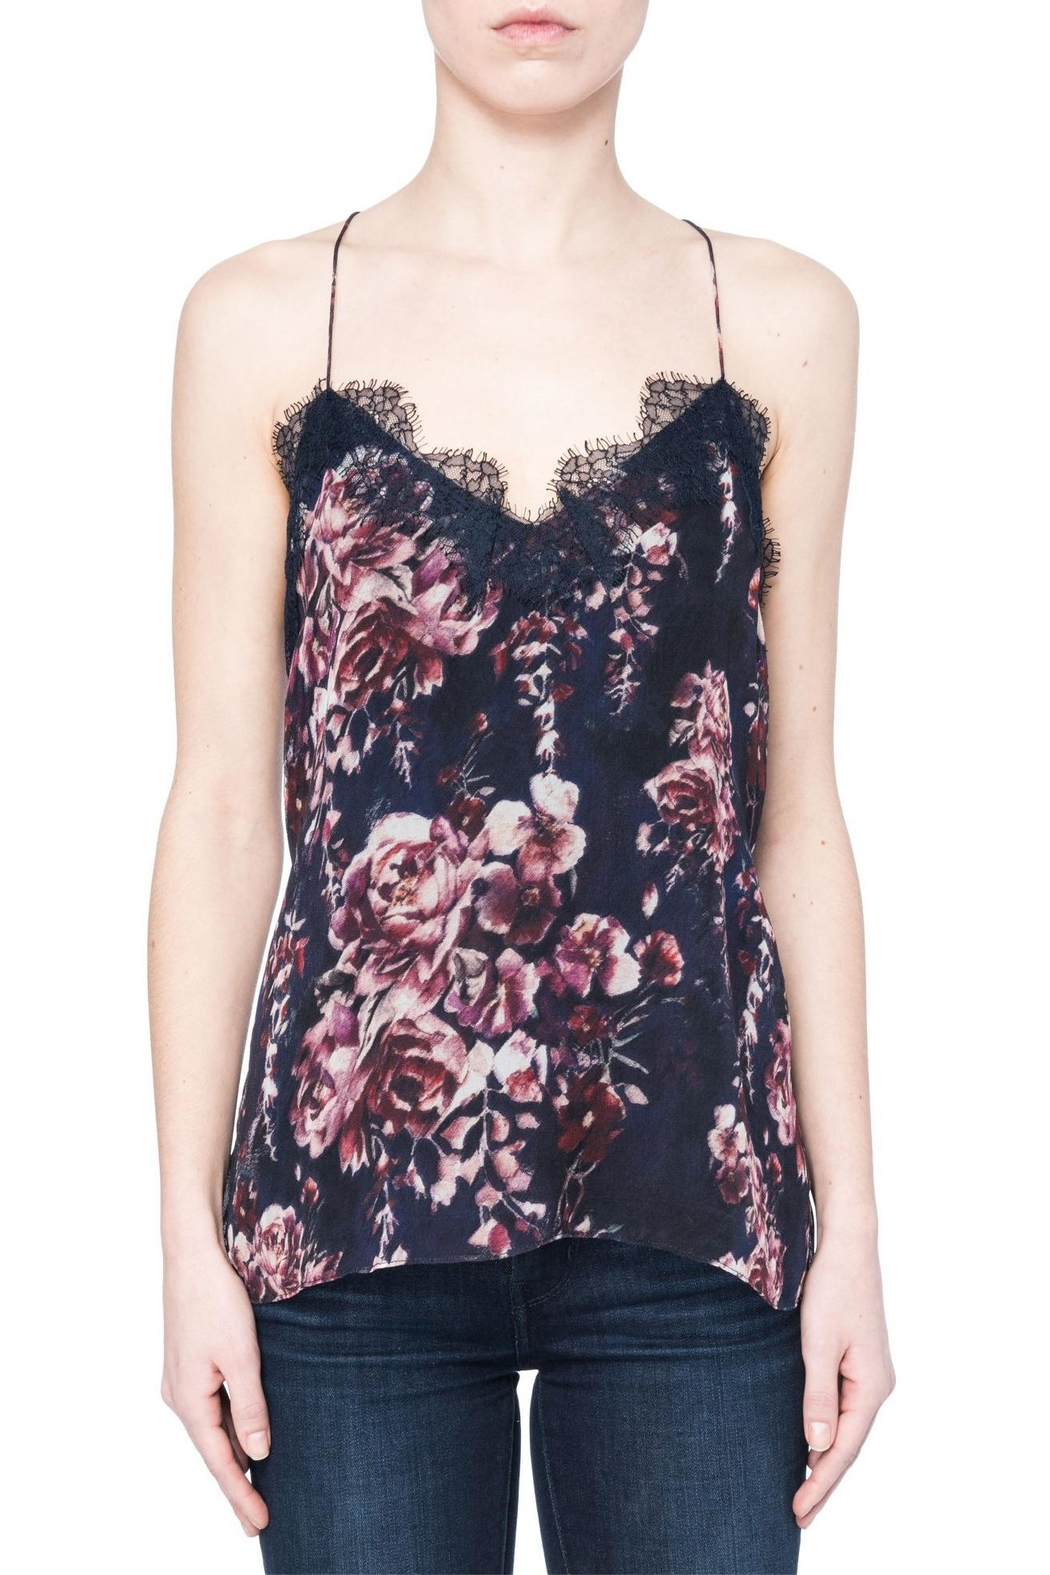 Cami NYC Floral Racerback Camisole - Main Image